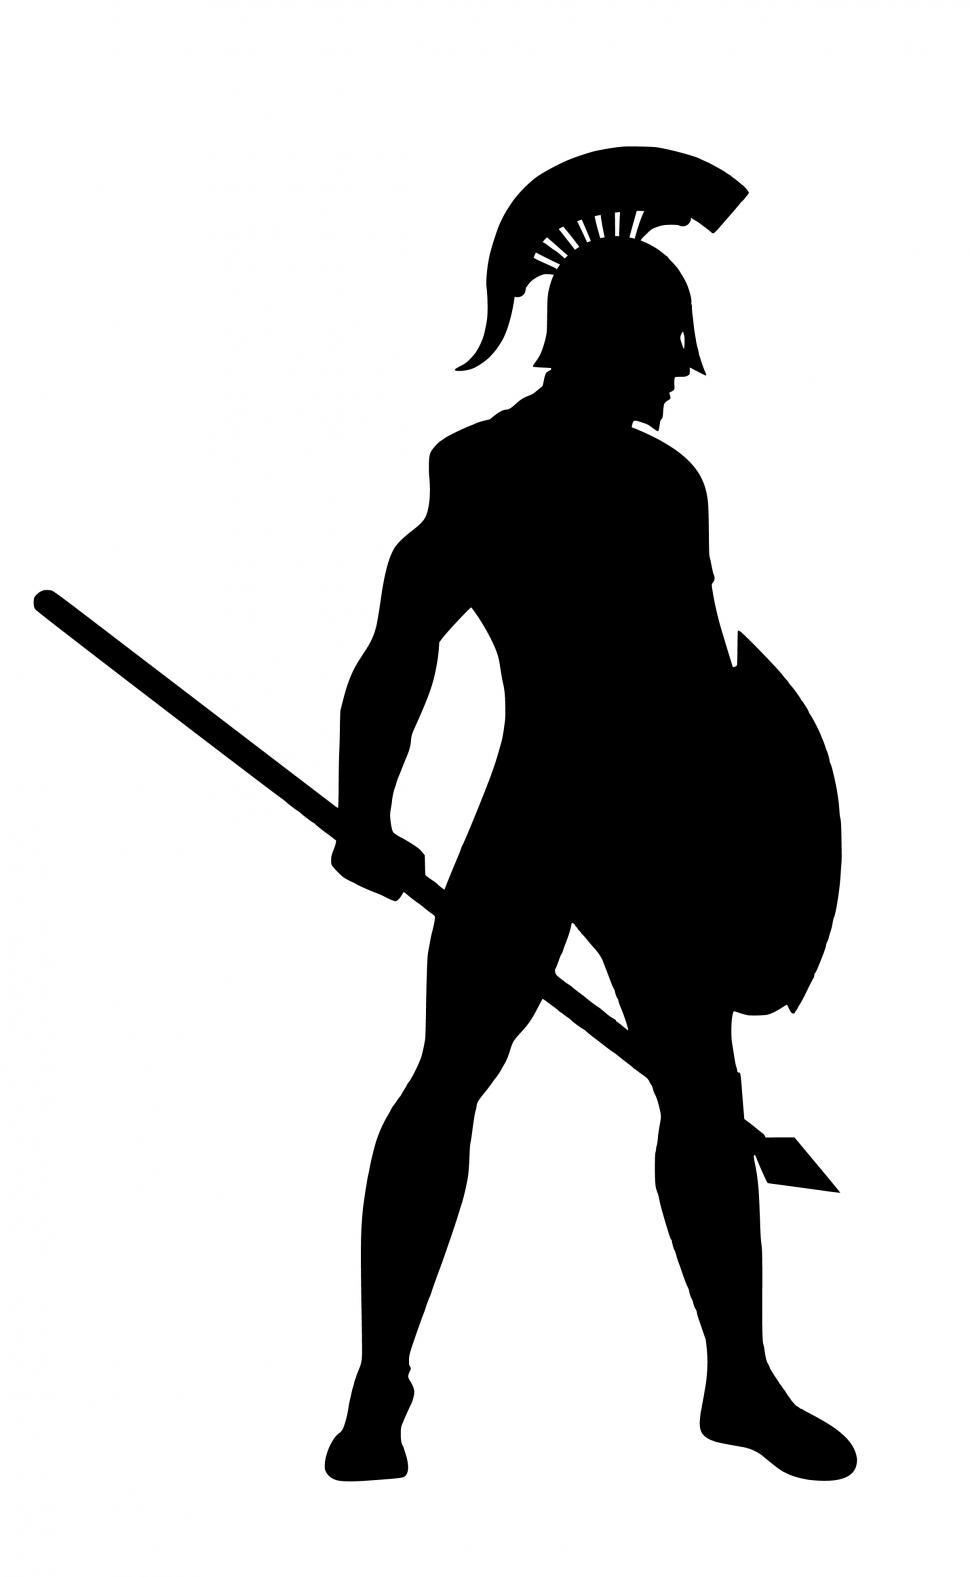 Download Free Stock HD Photo of Spartan warrior Silhouette  Online